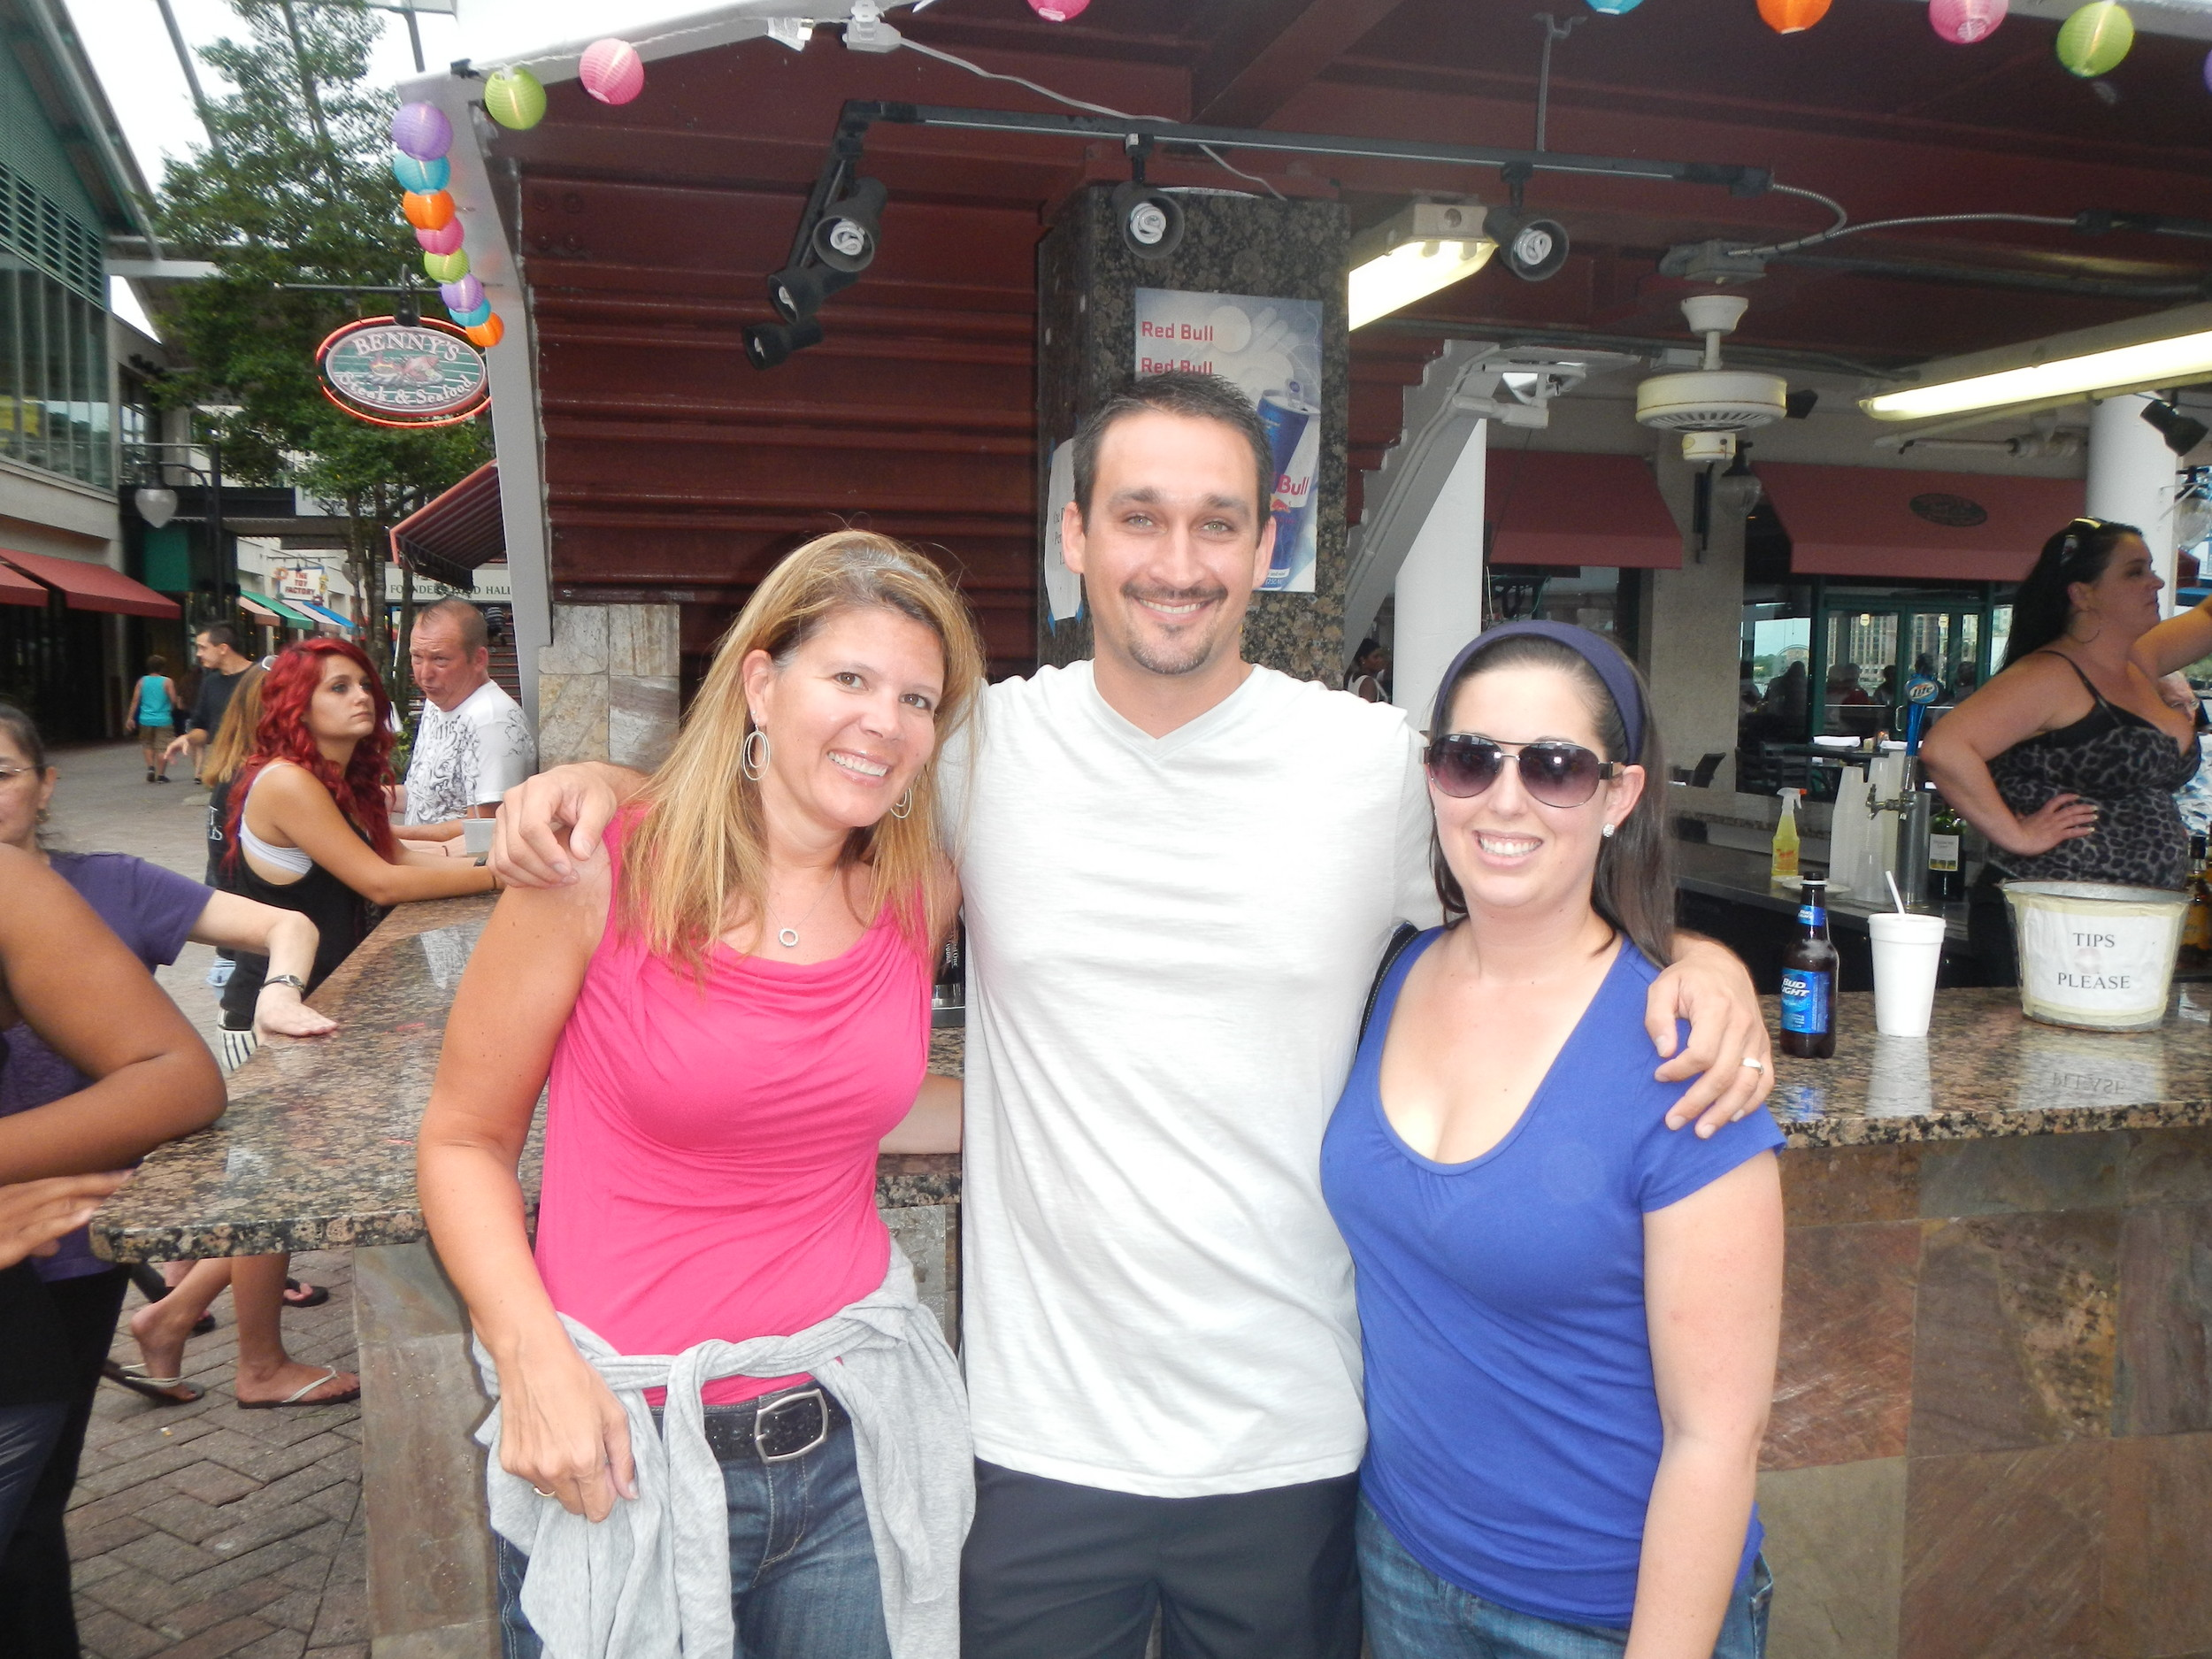 Jen Quirk, Joe Seogin, Jessica Delaney